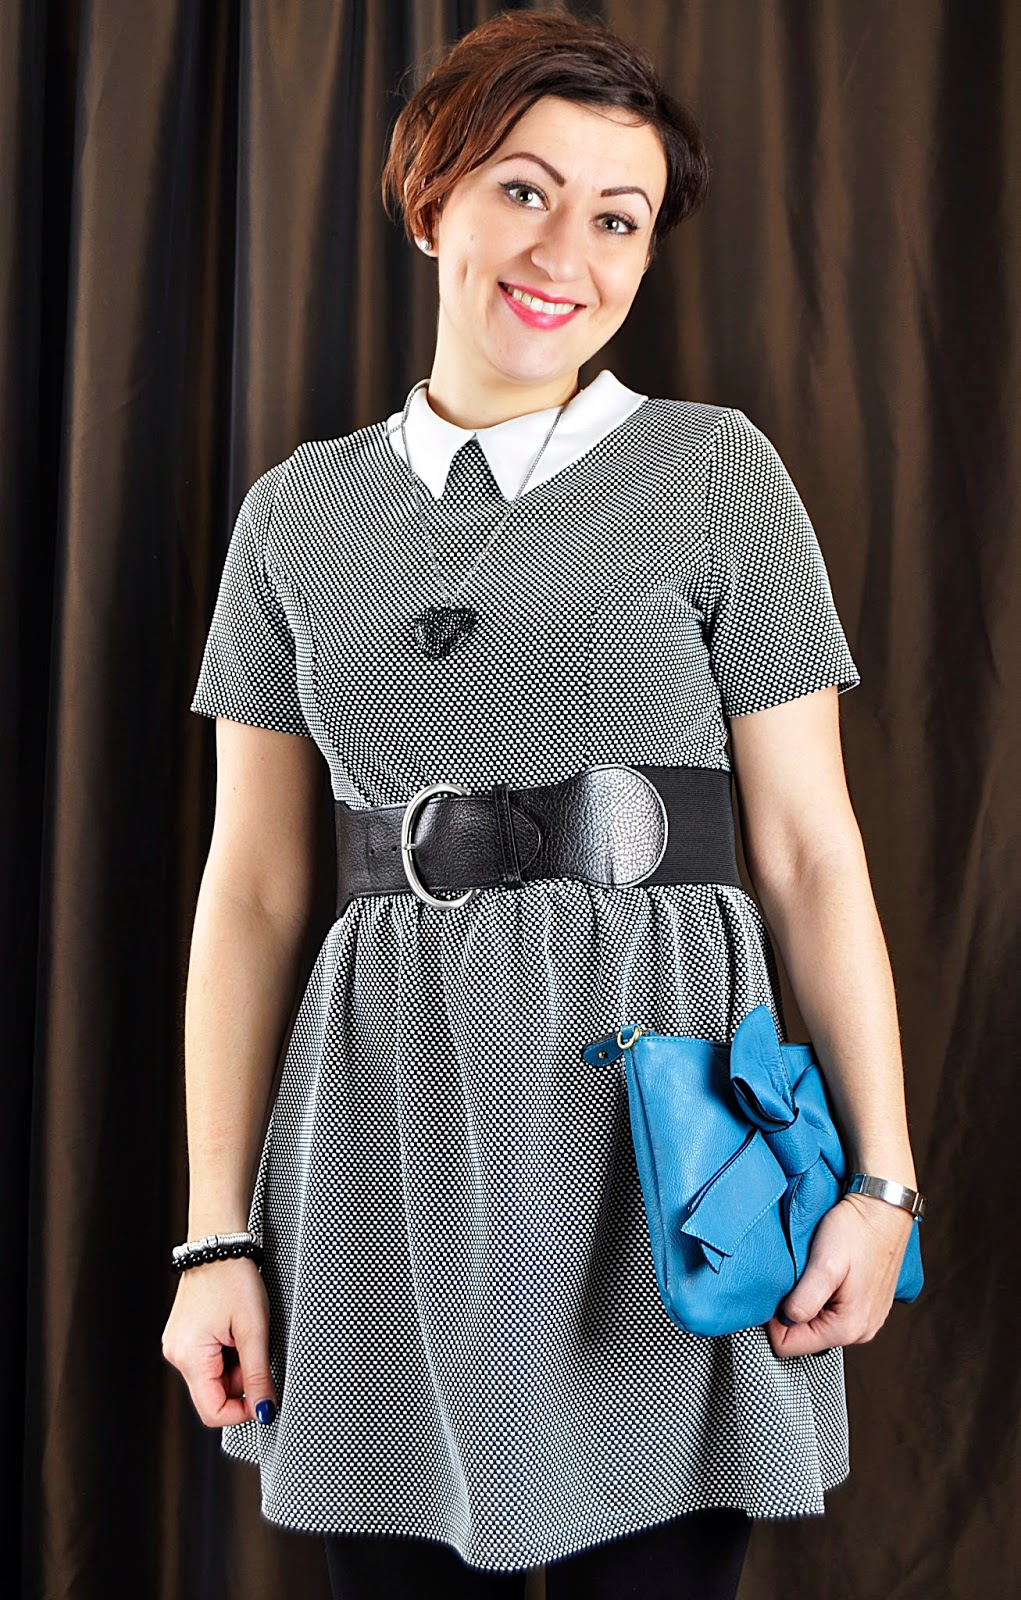 Fashion, Moda, Mohito necklace, New Look Dress, Peter Pan Collar Dress, Reserved bag, Styl, Outfit, Stylizacja, Adriana Style Blog, blog modowy Puławy, My Personal Style